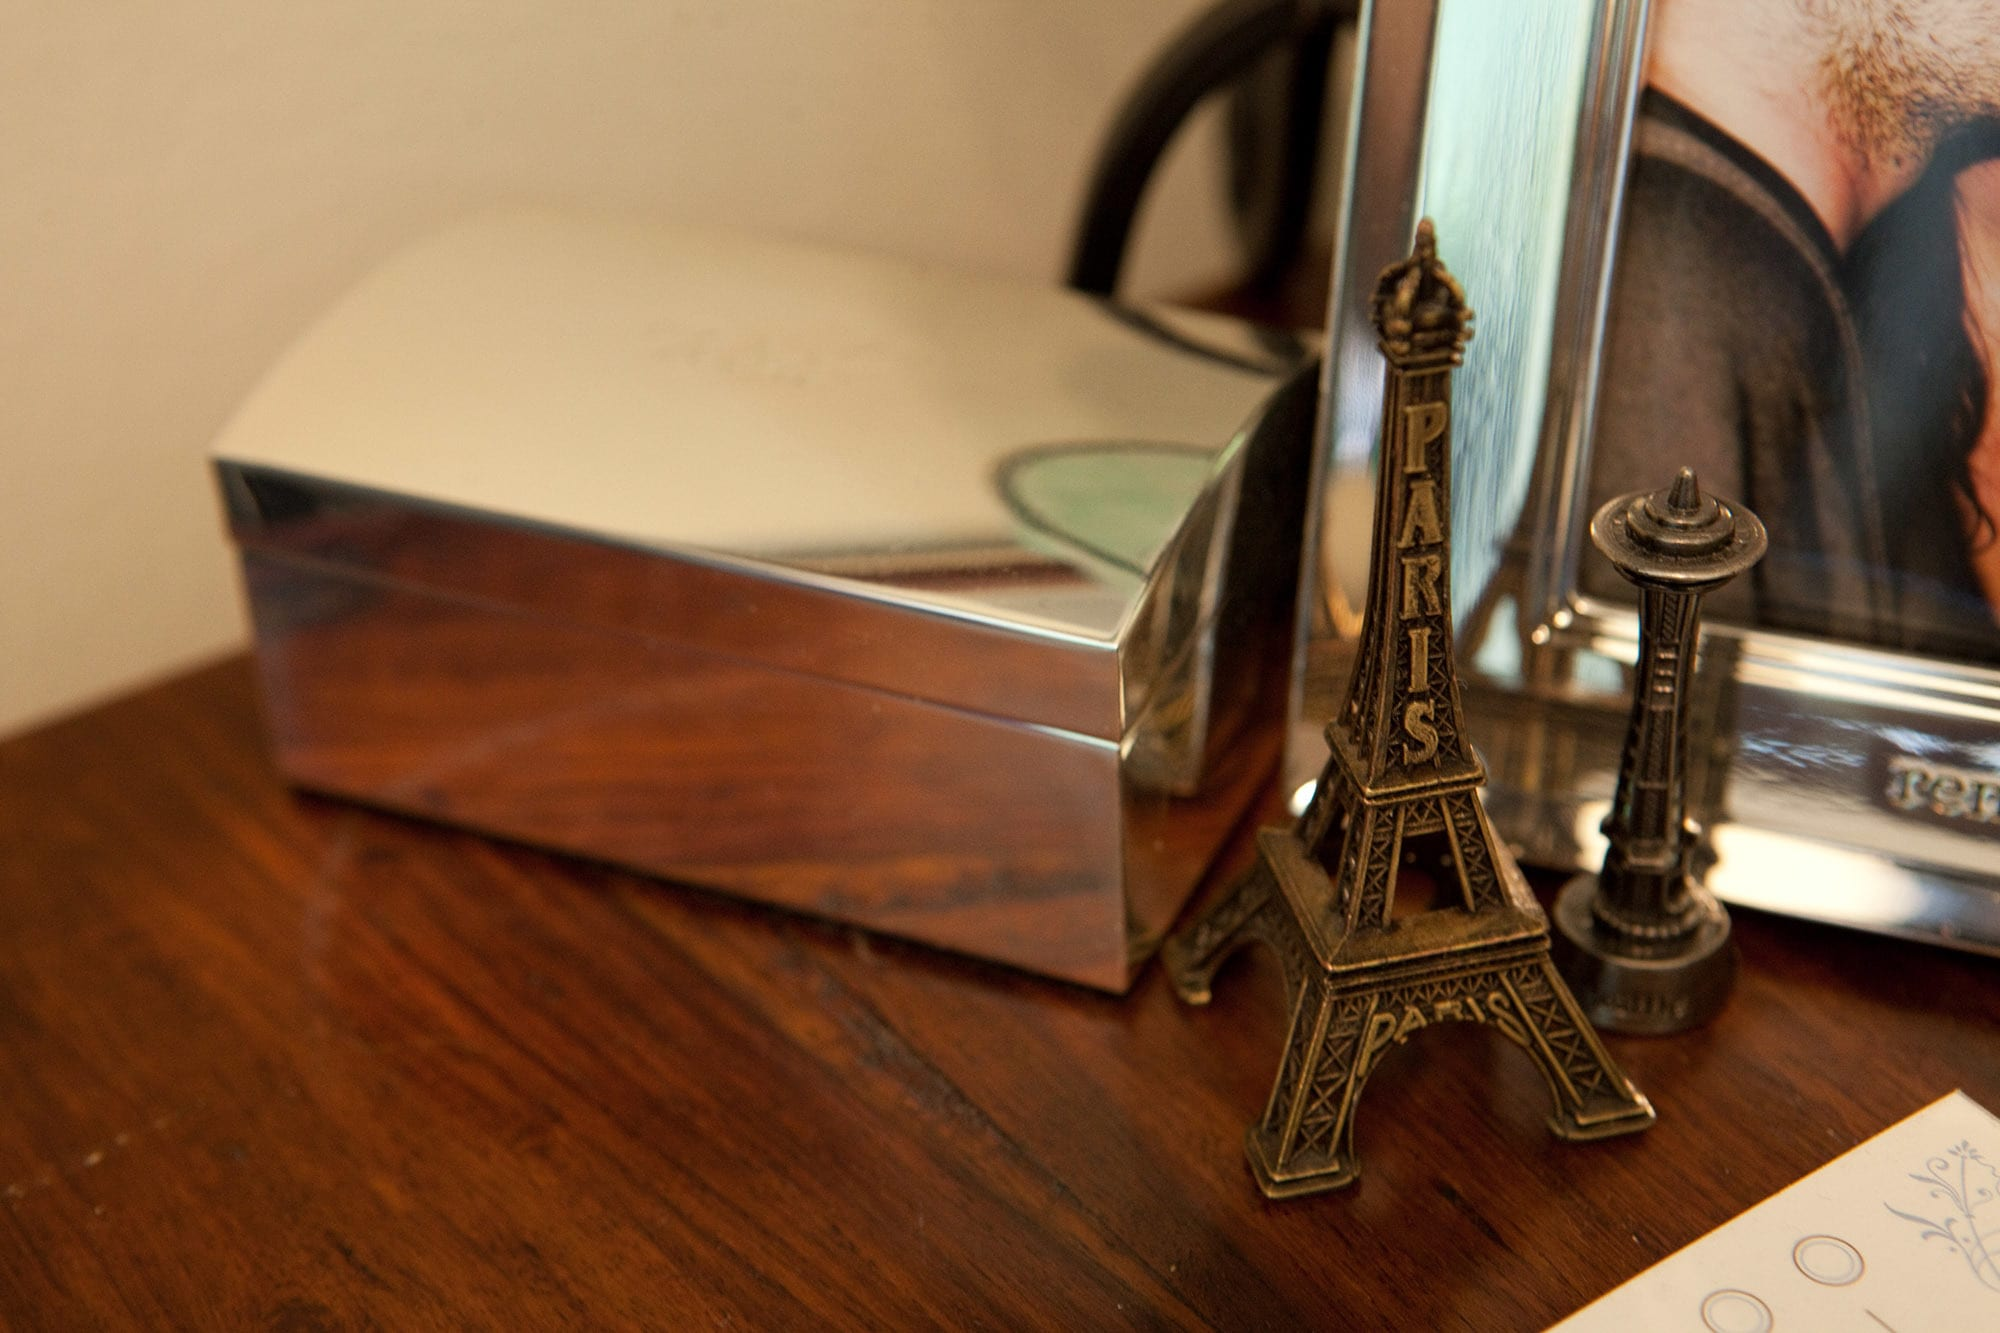 My old bedroom. The Eiffel Tower and Space Needle on my nightstand.